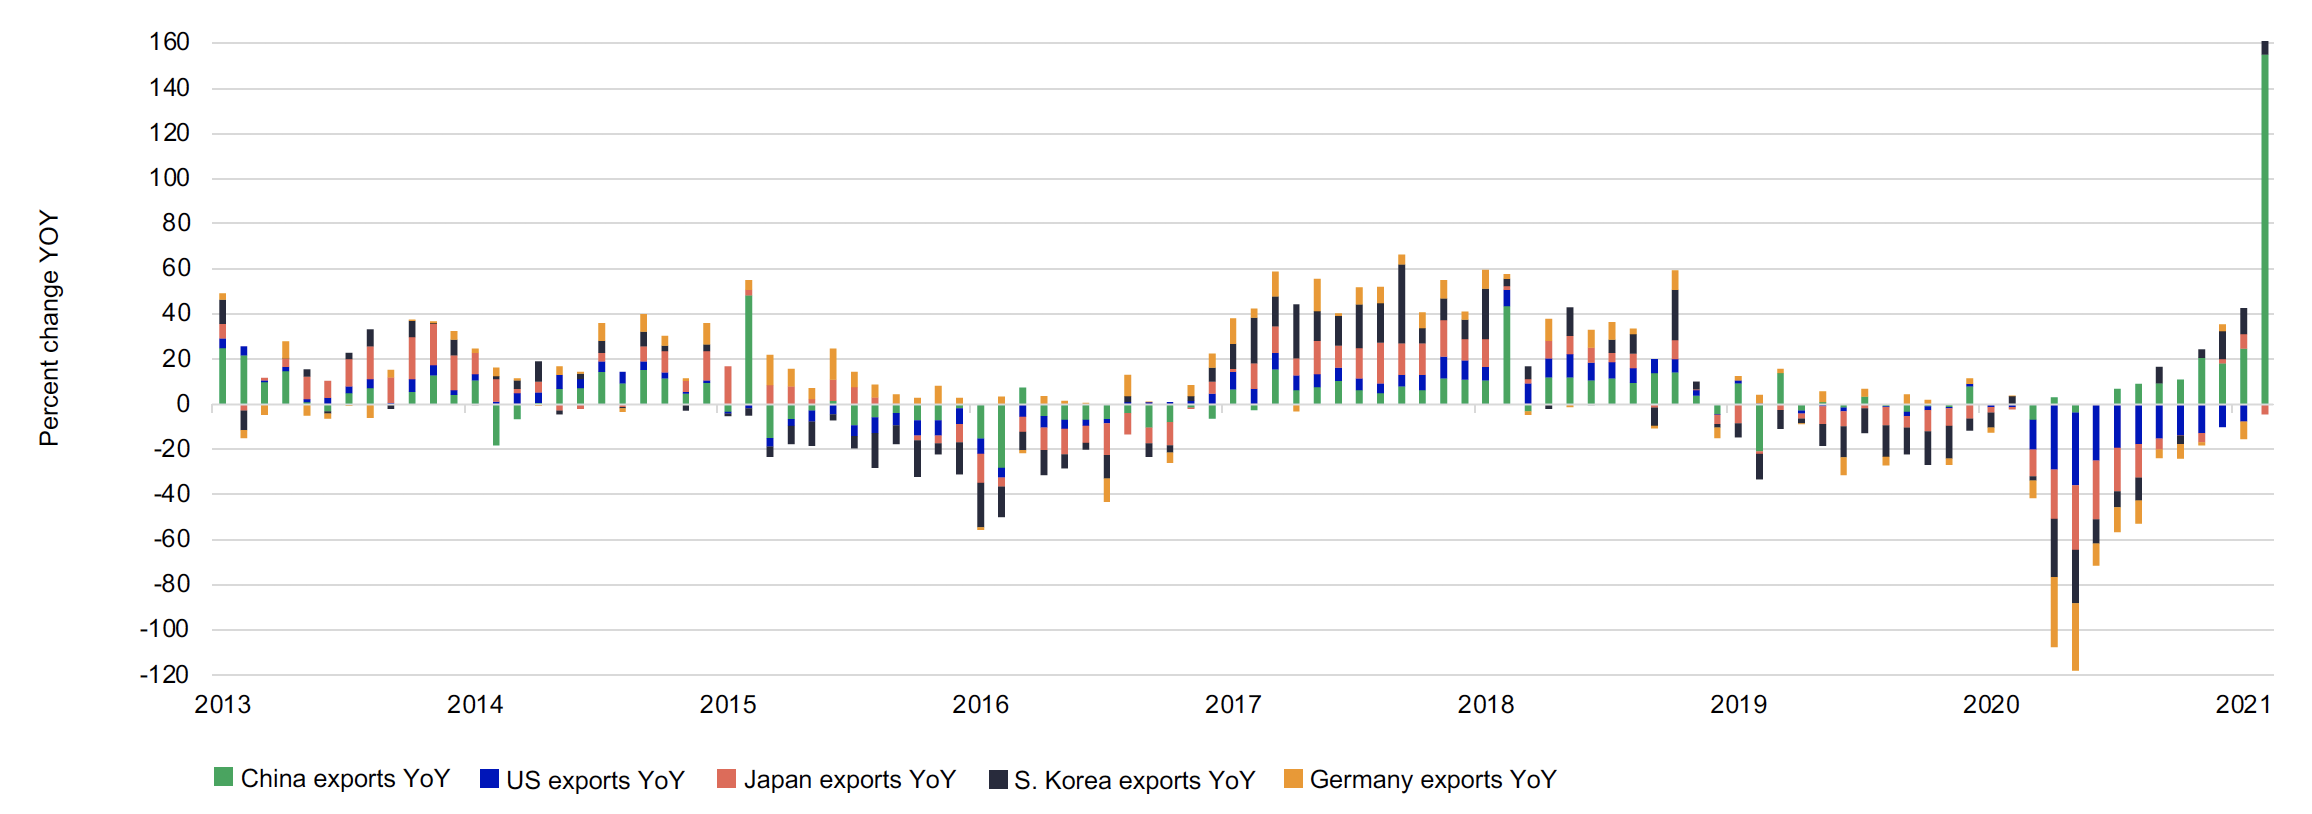 This stacked bar chart shows the year over year growth in exports for China, the United States, Japan, South Korea and Germany on a monthy basis from January 2013 to February 28, 2021. After a period of negative export growth year over year for much of 2020, export growth has been very strong to start 2021.